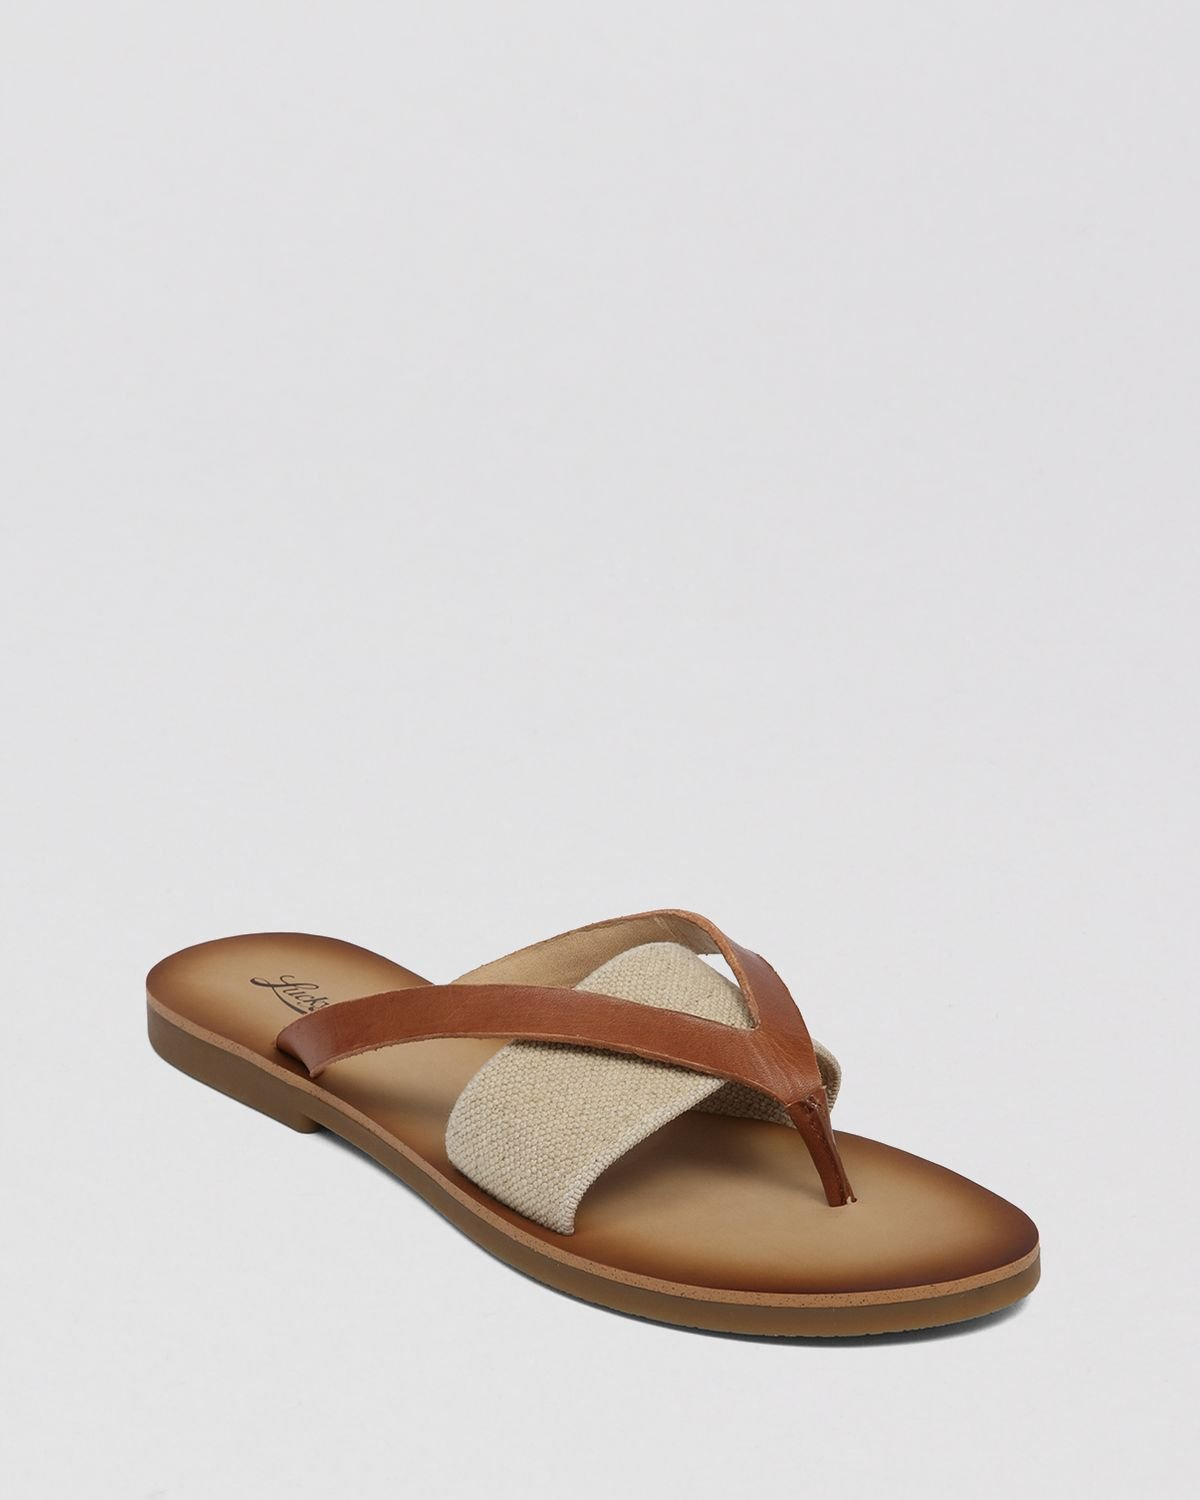 c2c7781d7815 Lyst - Lucky Brand Flat Thong Sandals Baxx in Brown